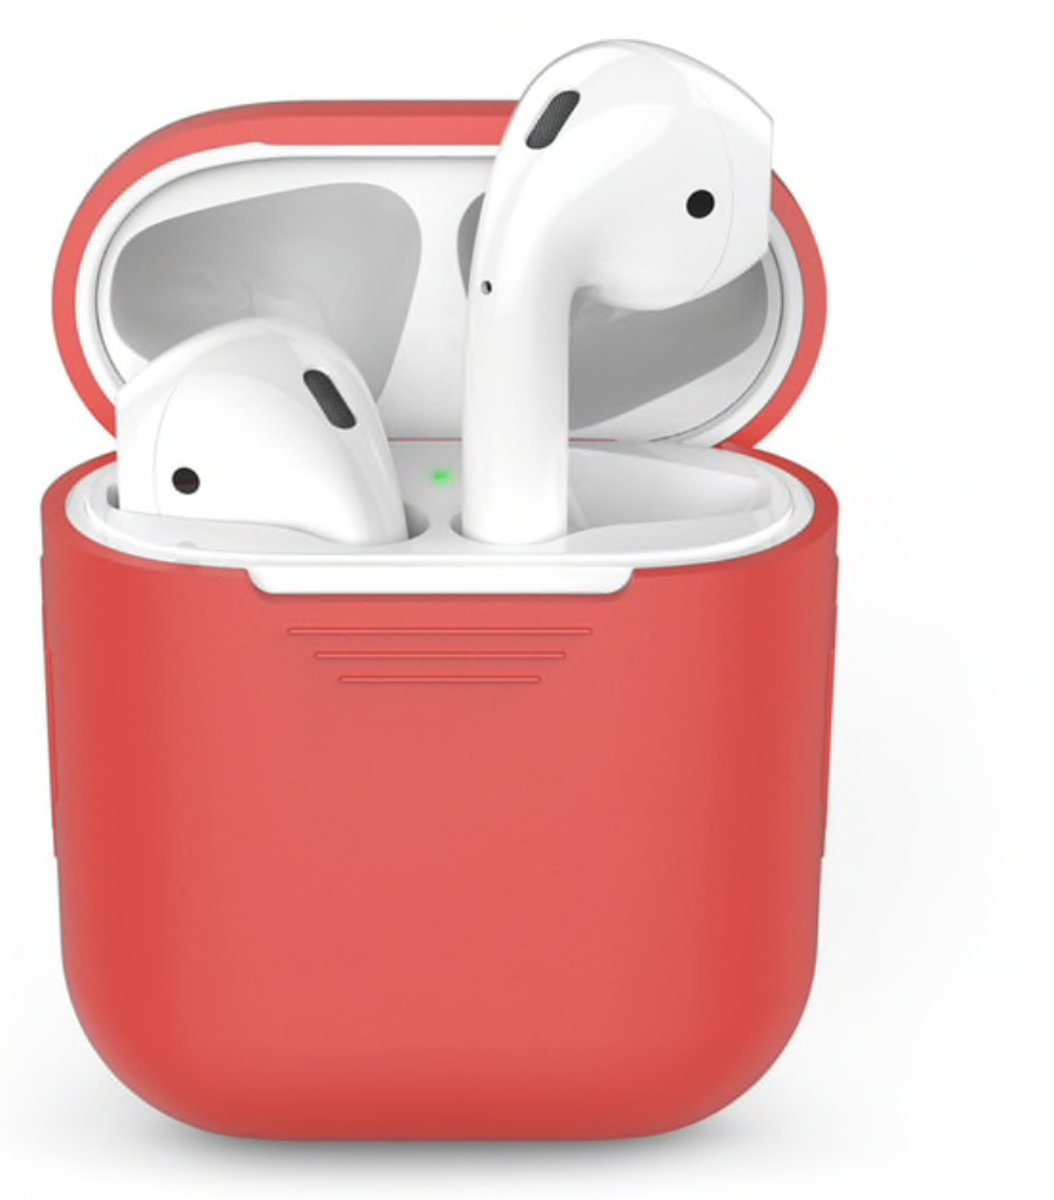 Airpods Silicone Case Cover Hoesje voor Apple Airpods - Rood kopen